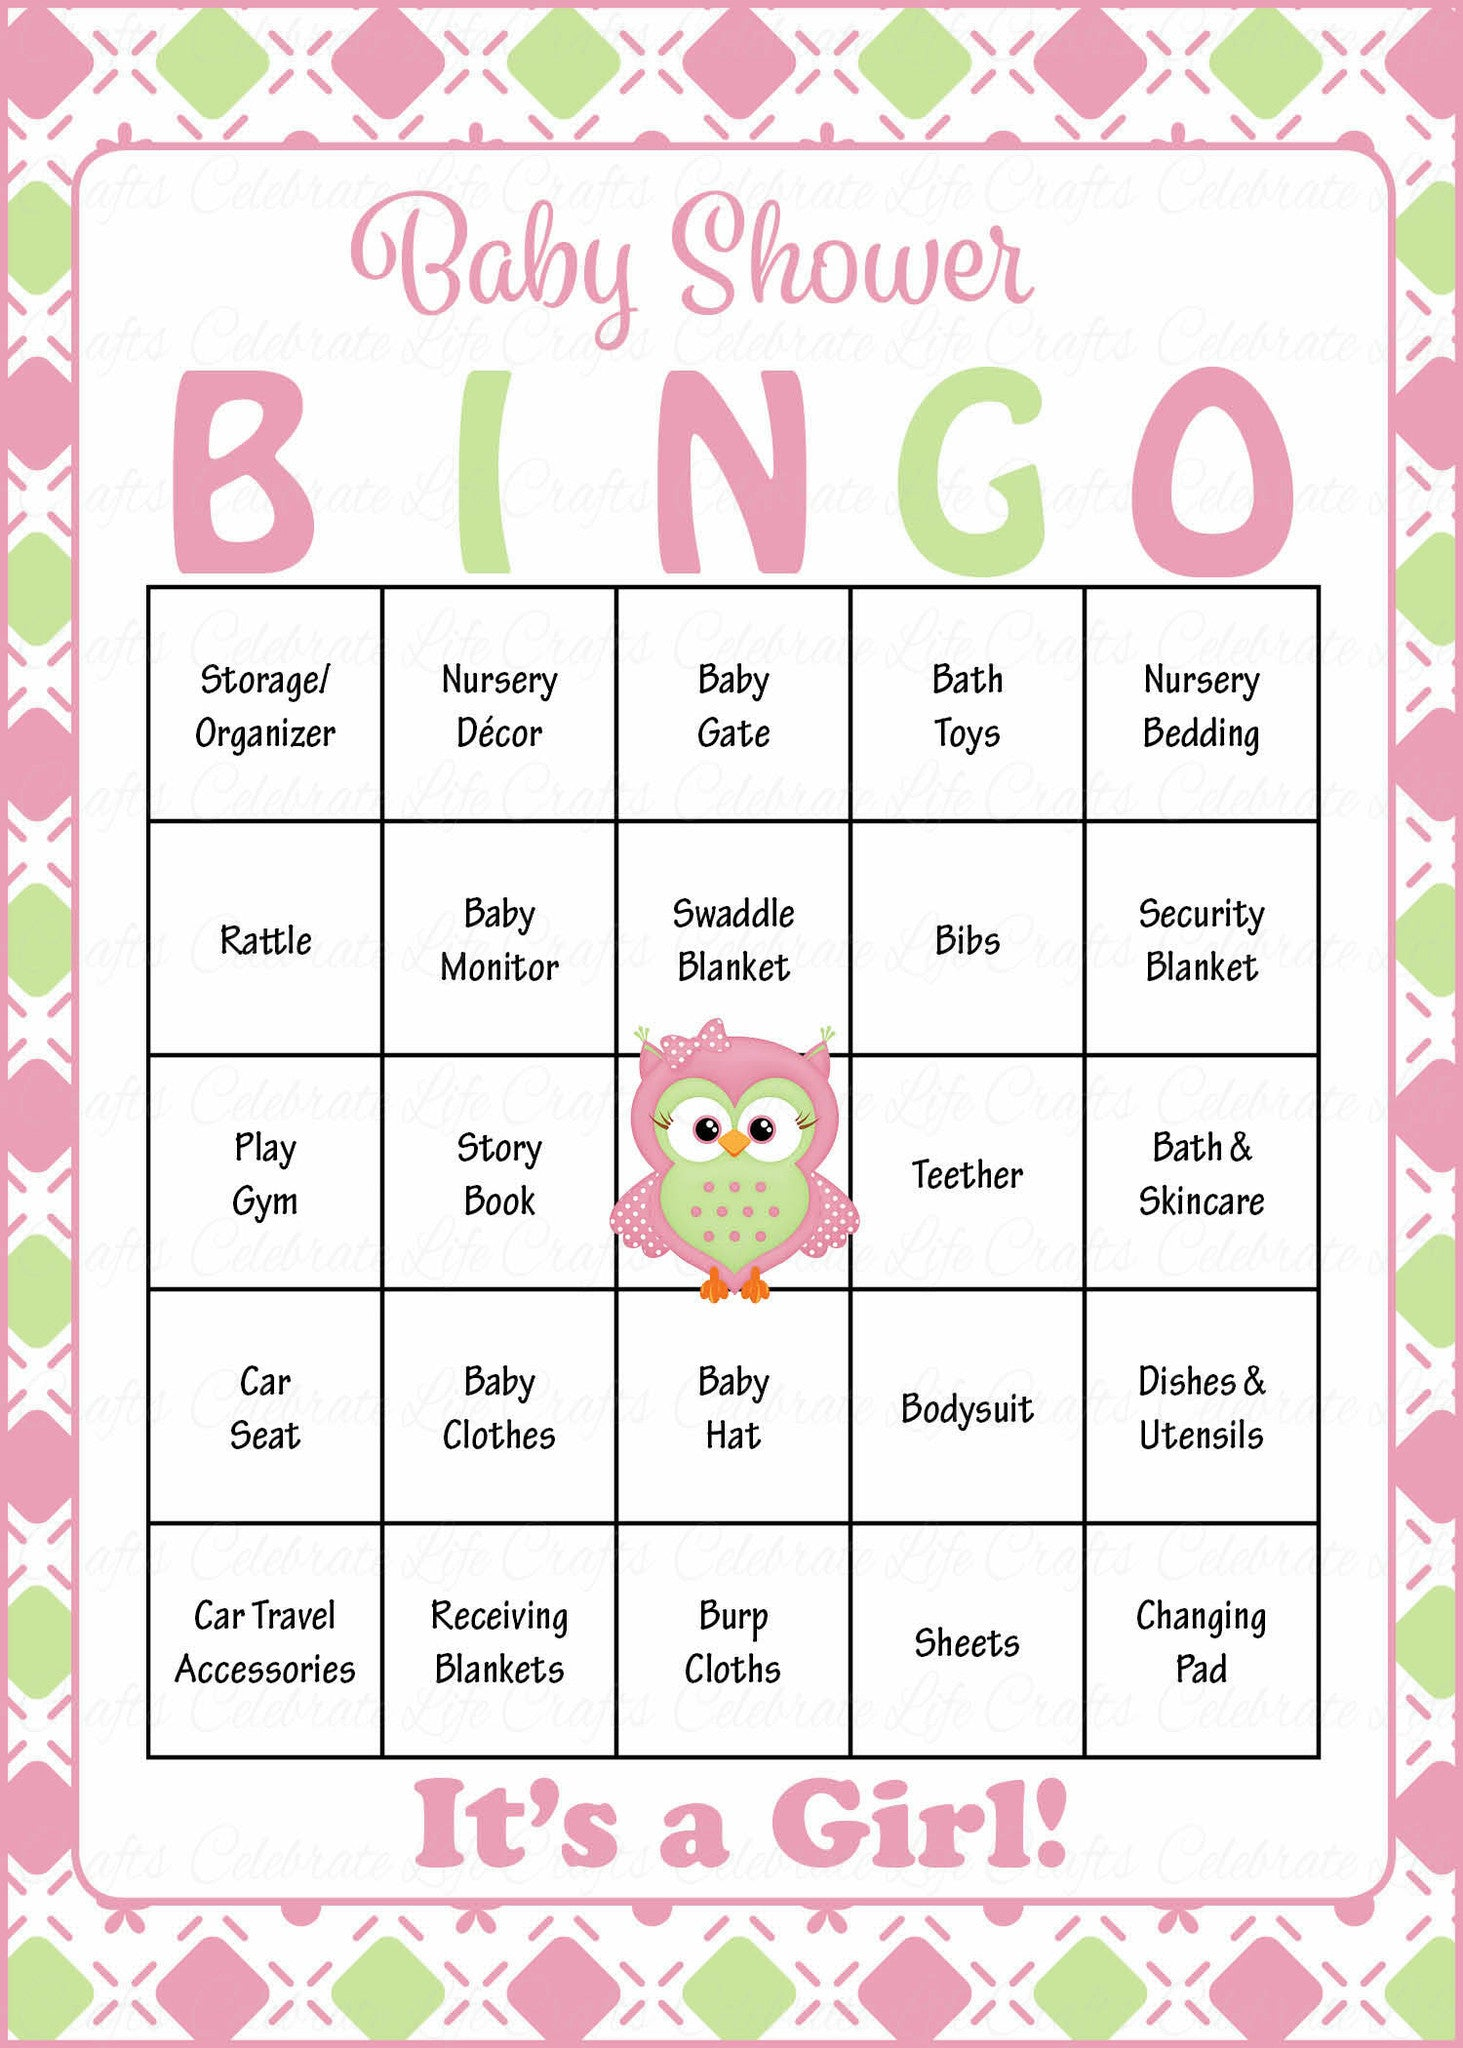 photograph regarding Baby Bingo Printable titled Owl Youngster Bingo Playing cards - Printable Obtain - Prefilled - Youngster Shower Sport for Woman - Purple Eco-friendly